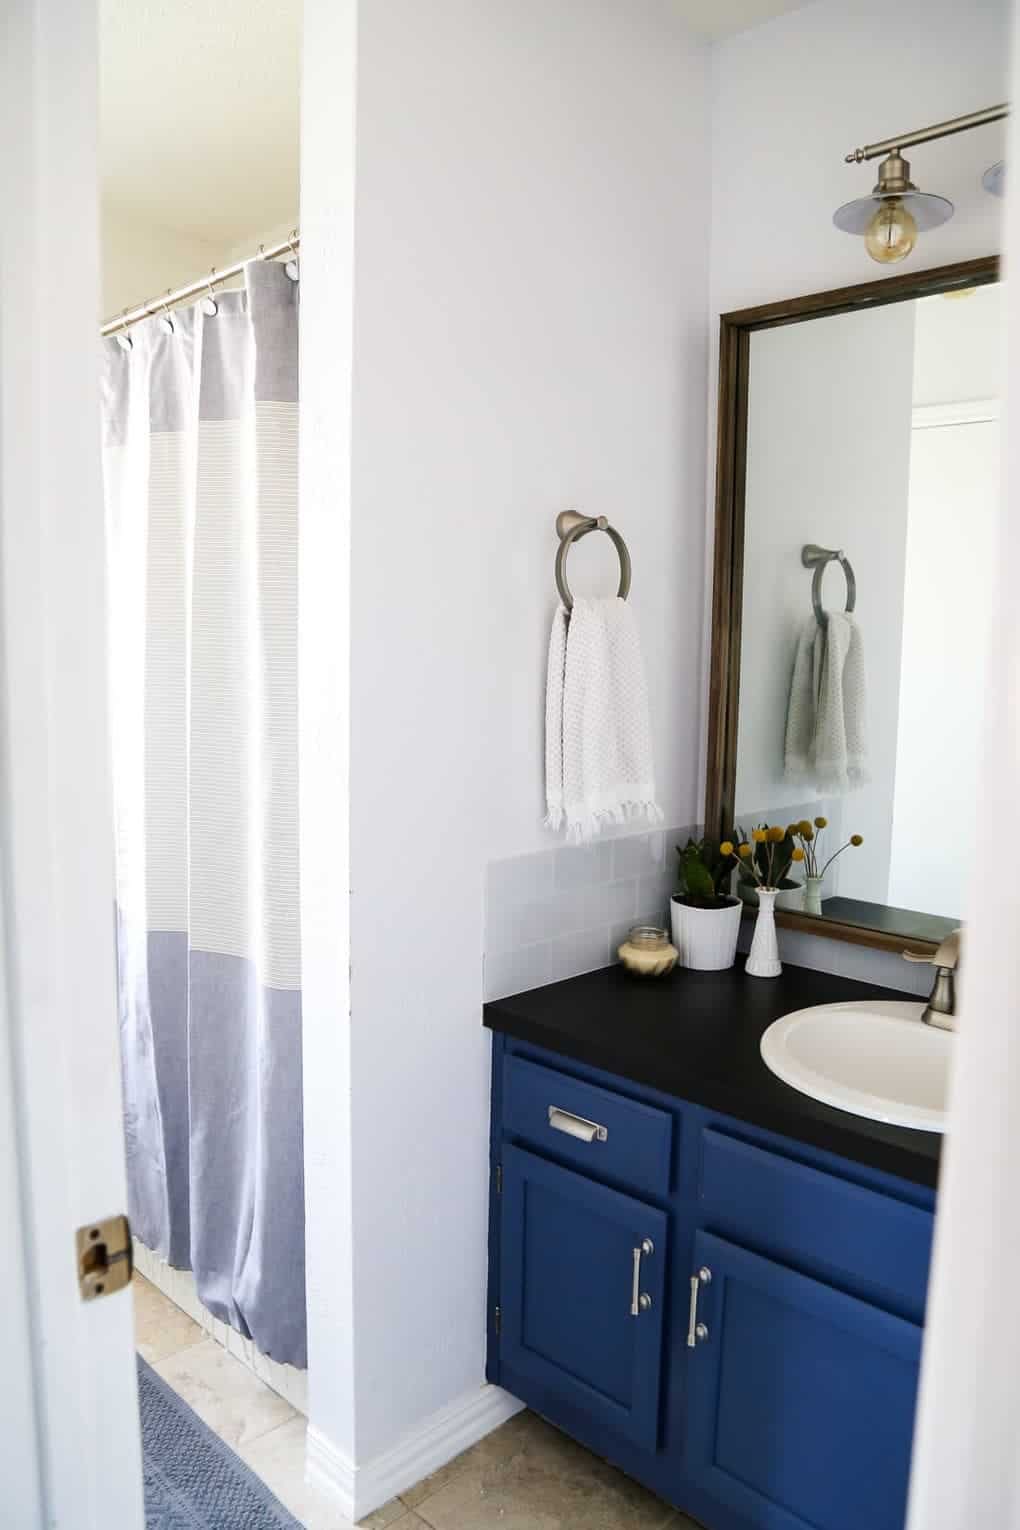 Weekend Bathroom Makeover Reveal | Love & Renovations